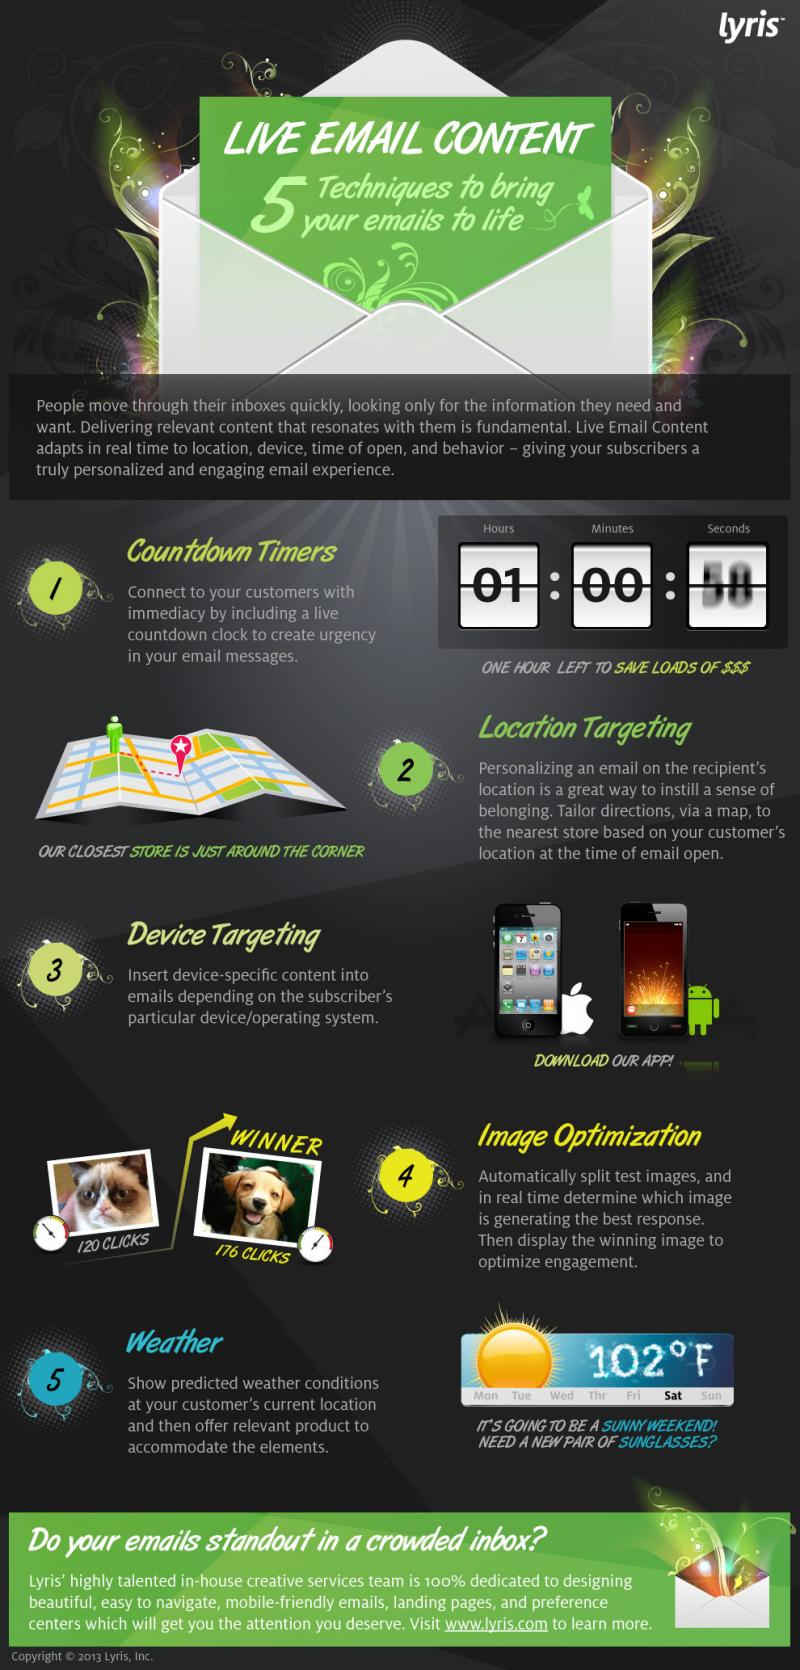 5 techniques to bring your email to life #infographic